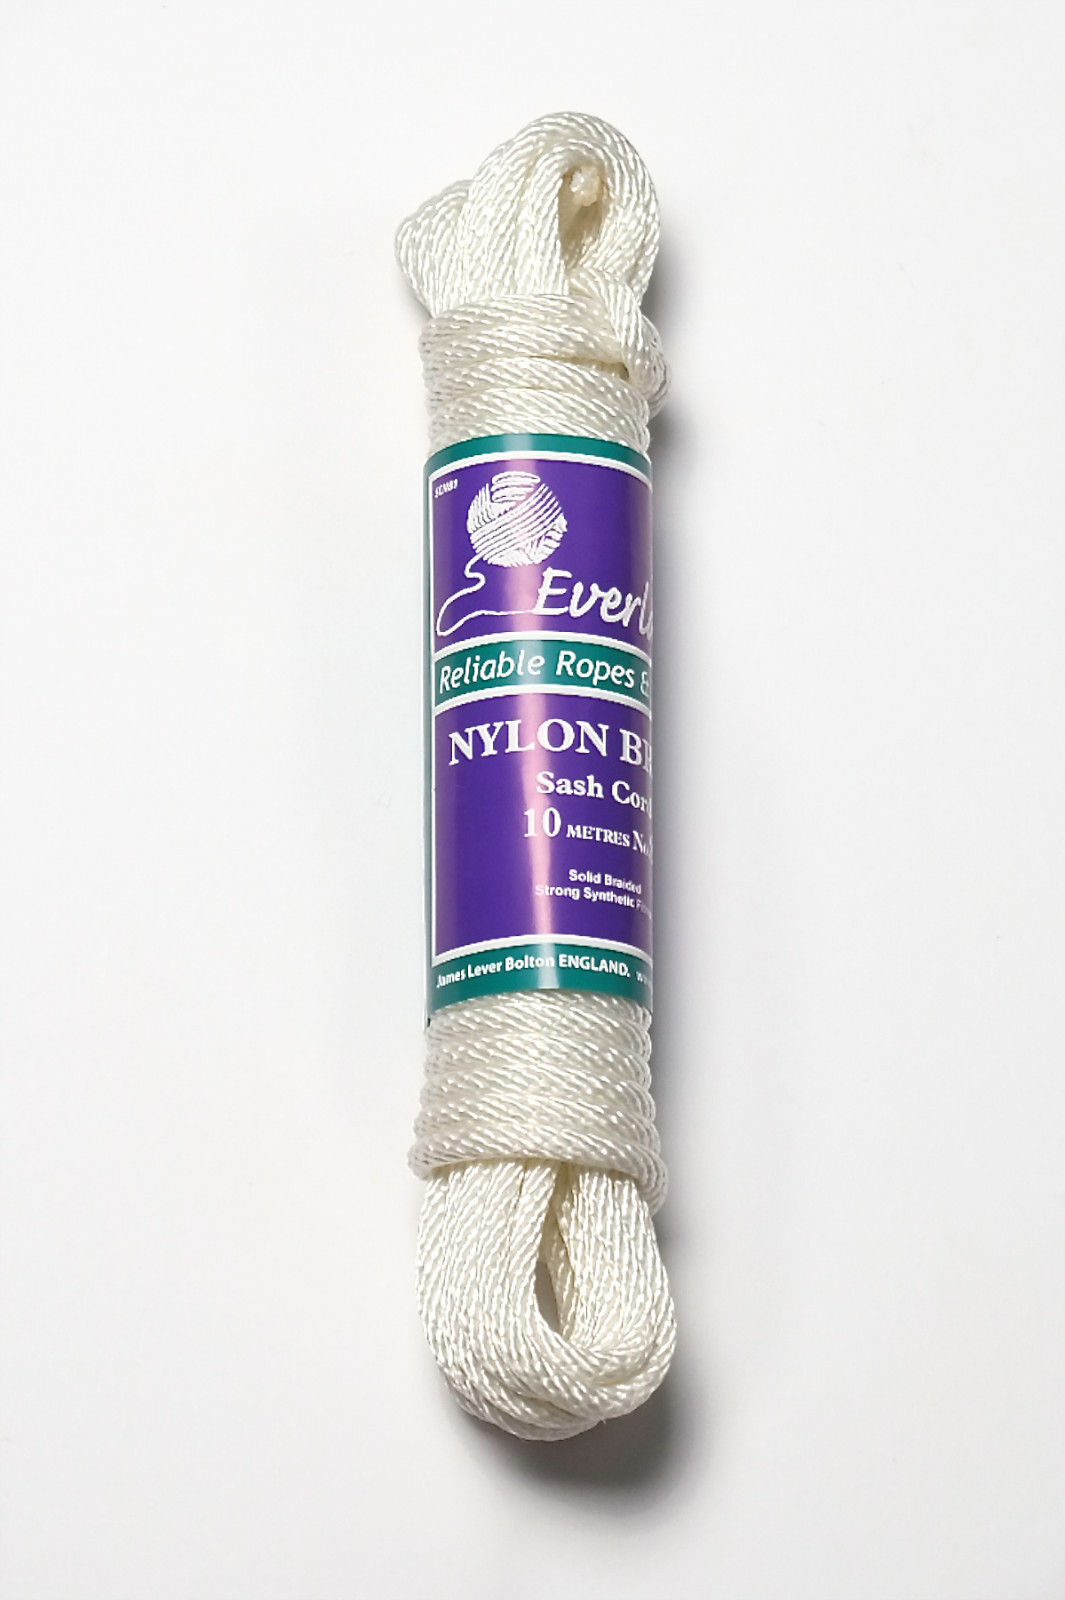 'EVERLASTO' STRONG SOLID BRAID NYLON SASH CORD - No.10 (8MM) - VARIOUS LENGTHS